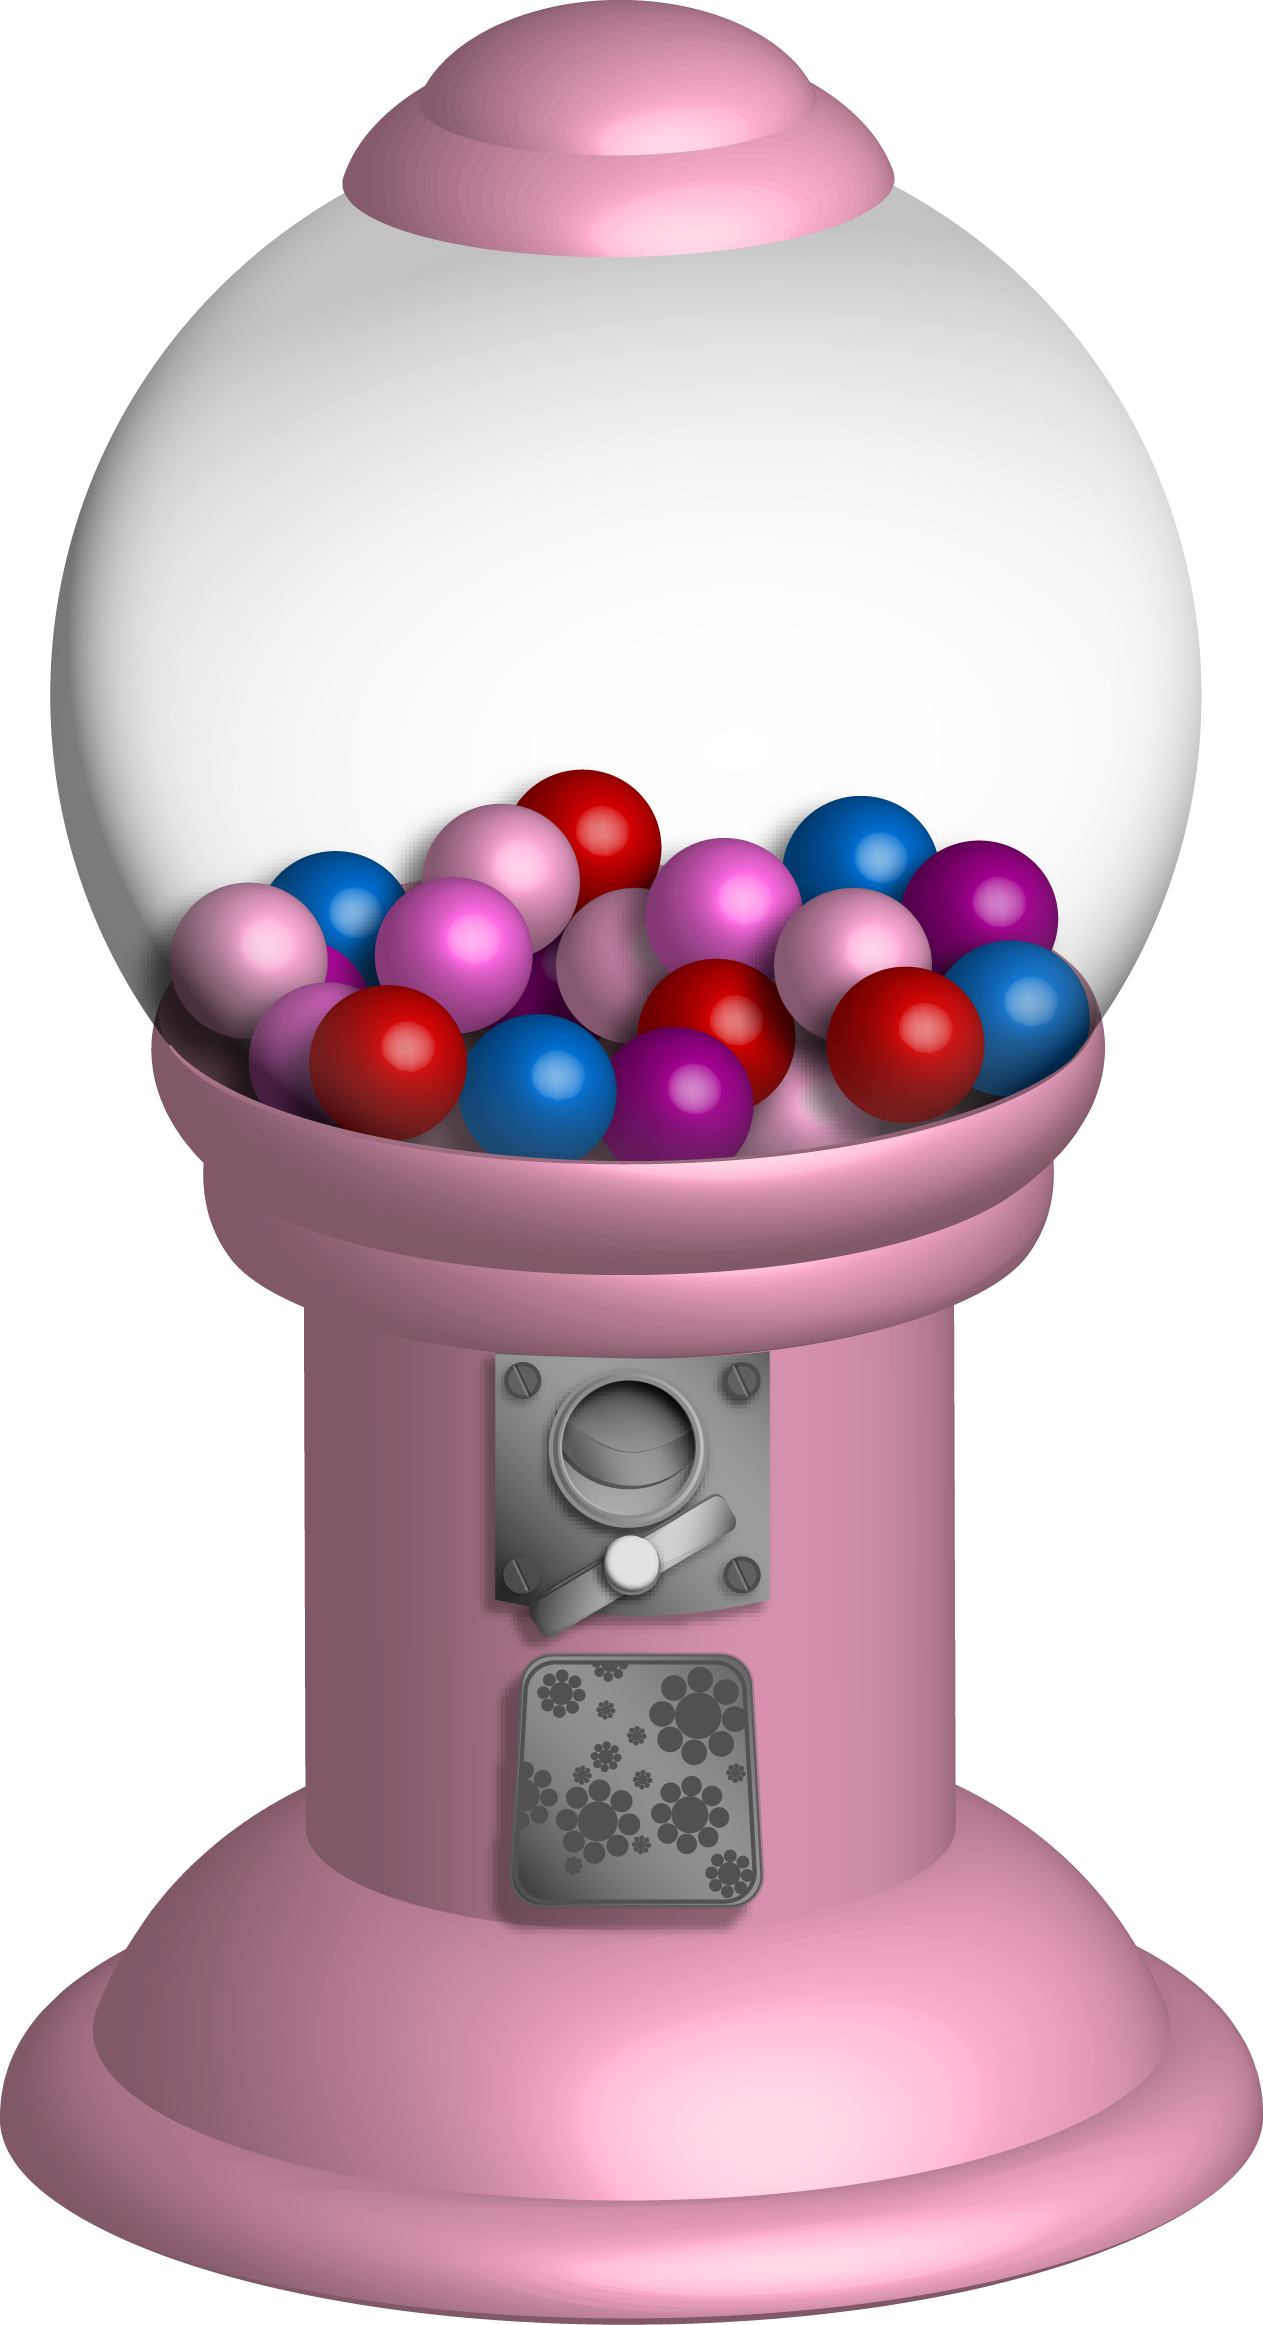 picture free stock Gumball machine clipart coloring page. Echoia com illustration download